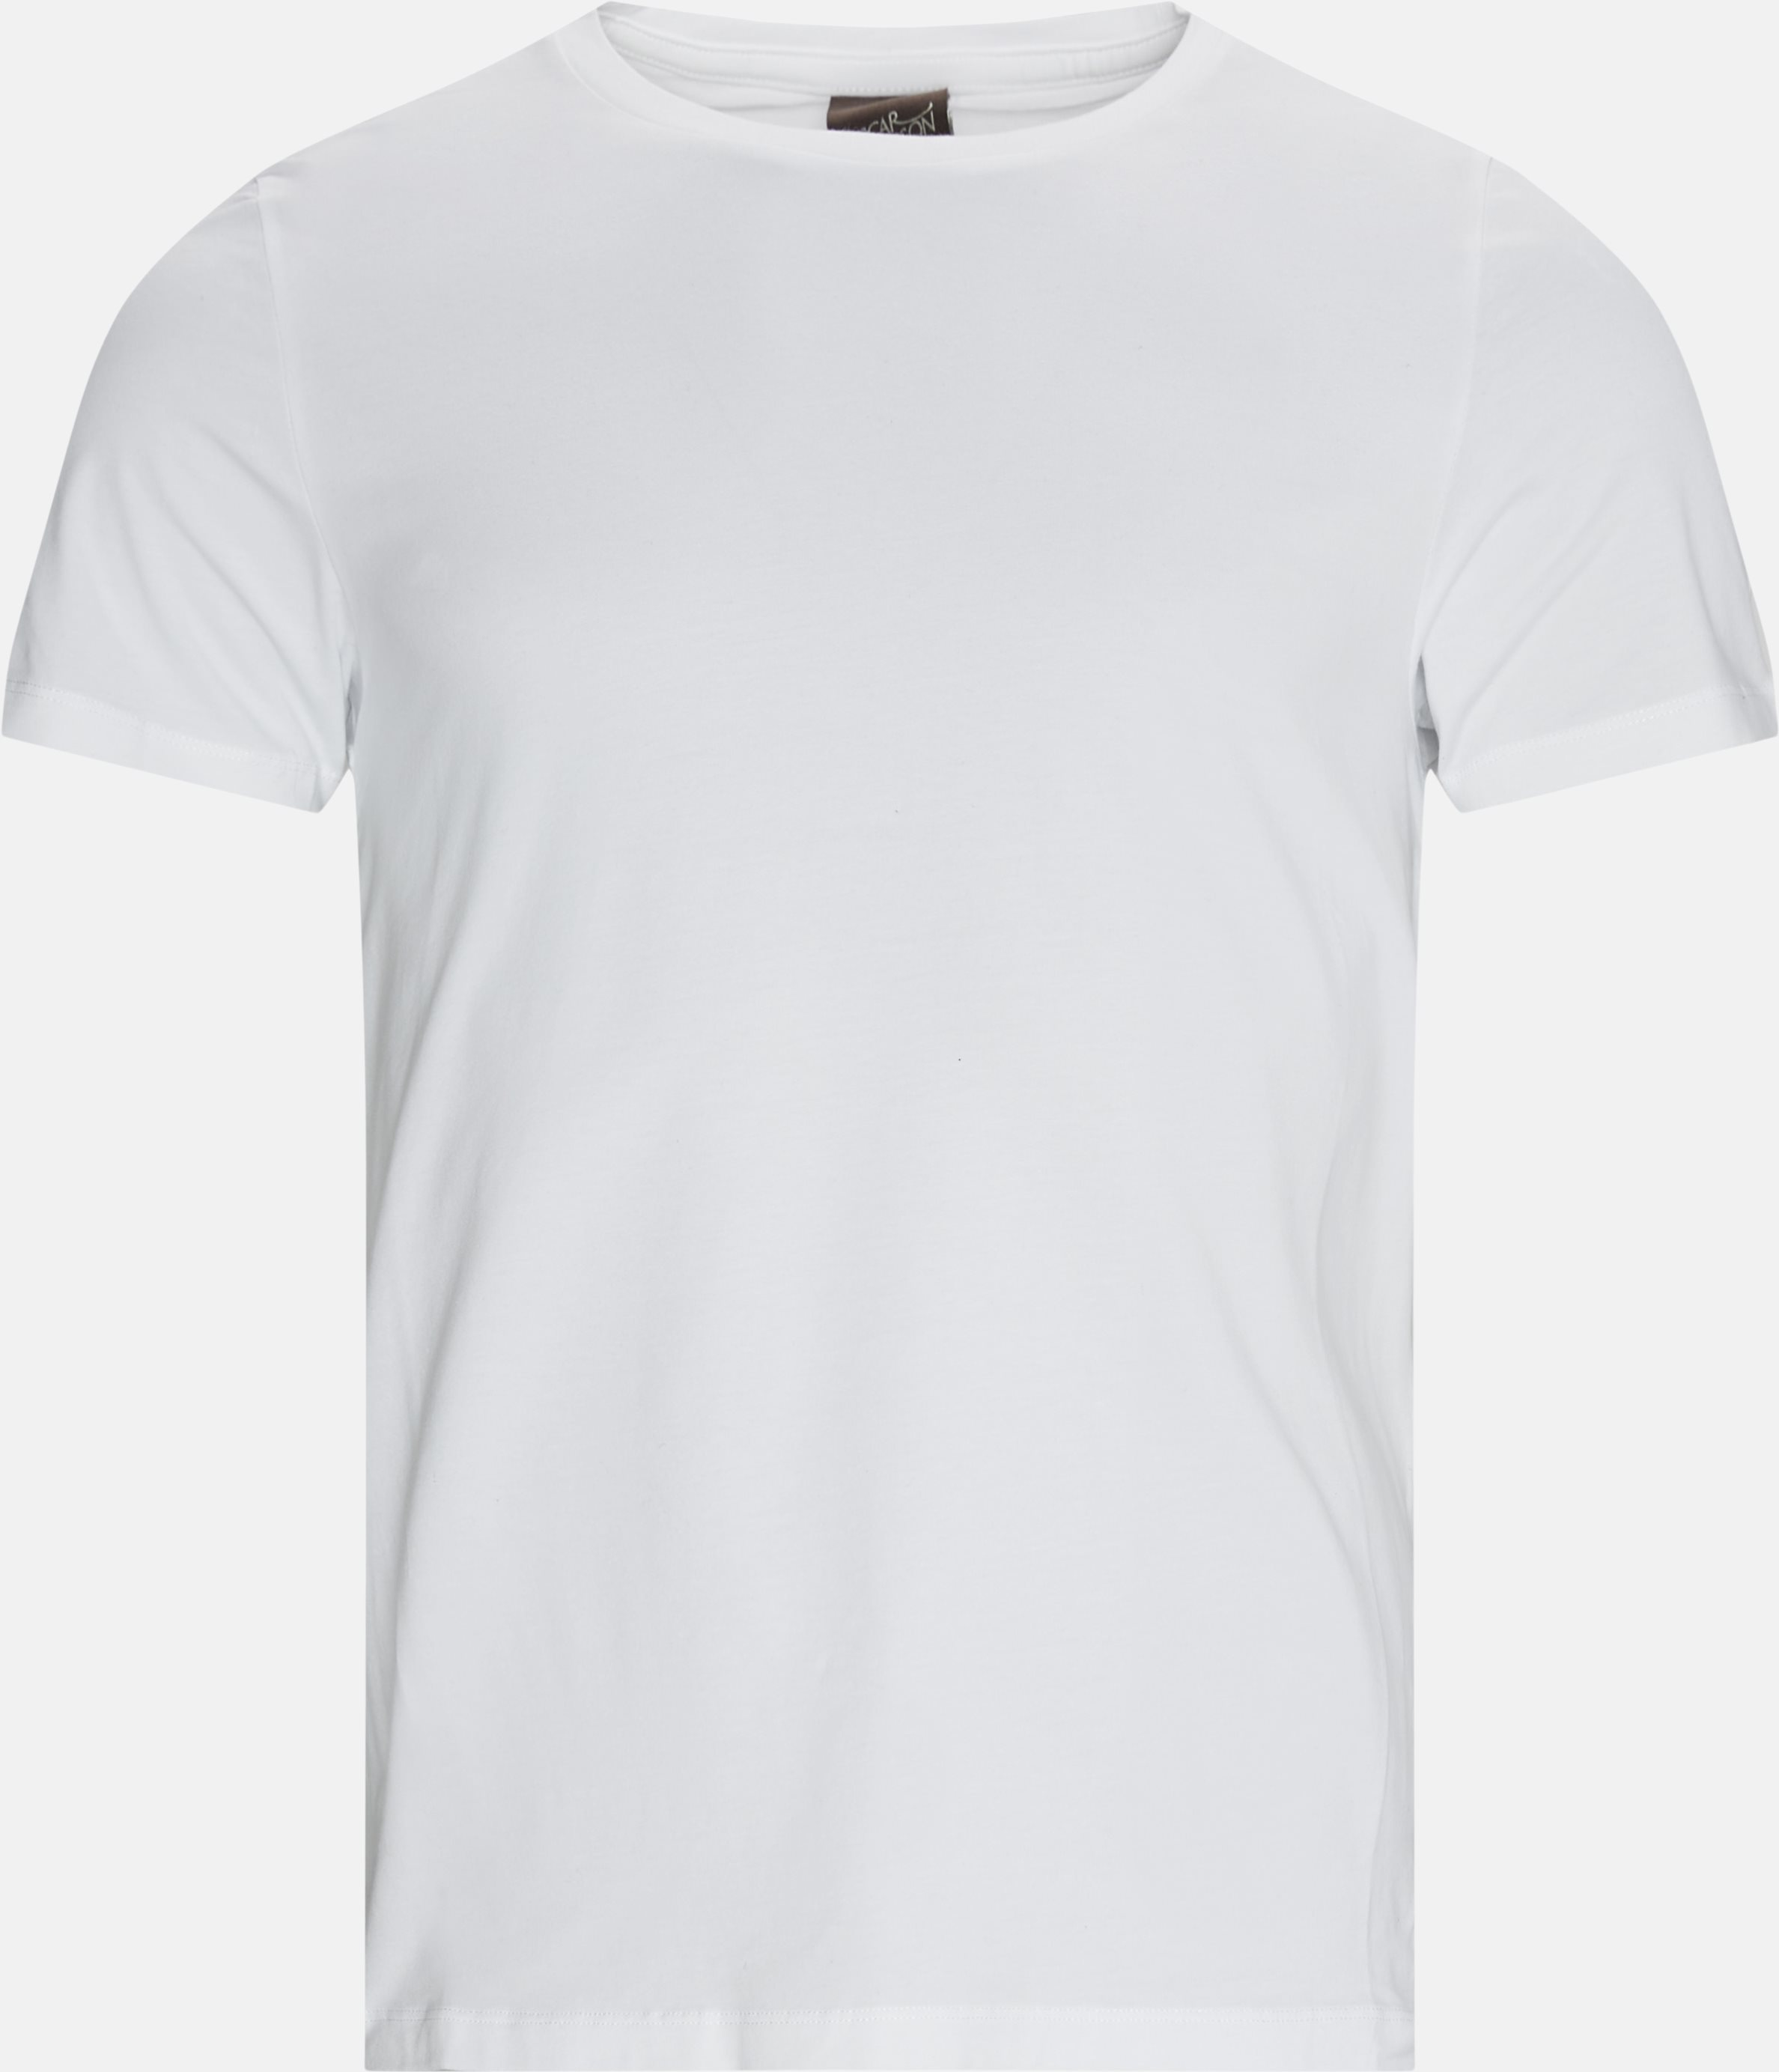 Kyran T-shirt - T-shirts - Regular fit - Hvid